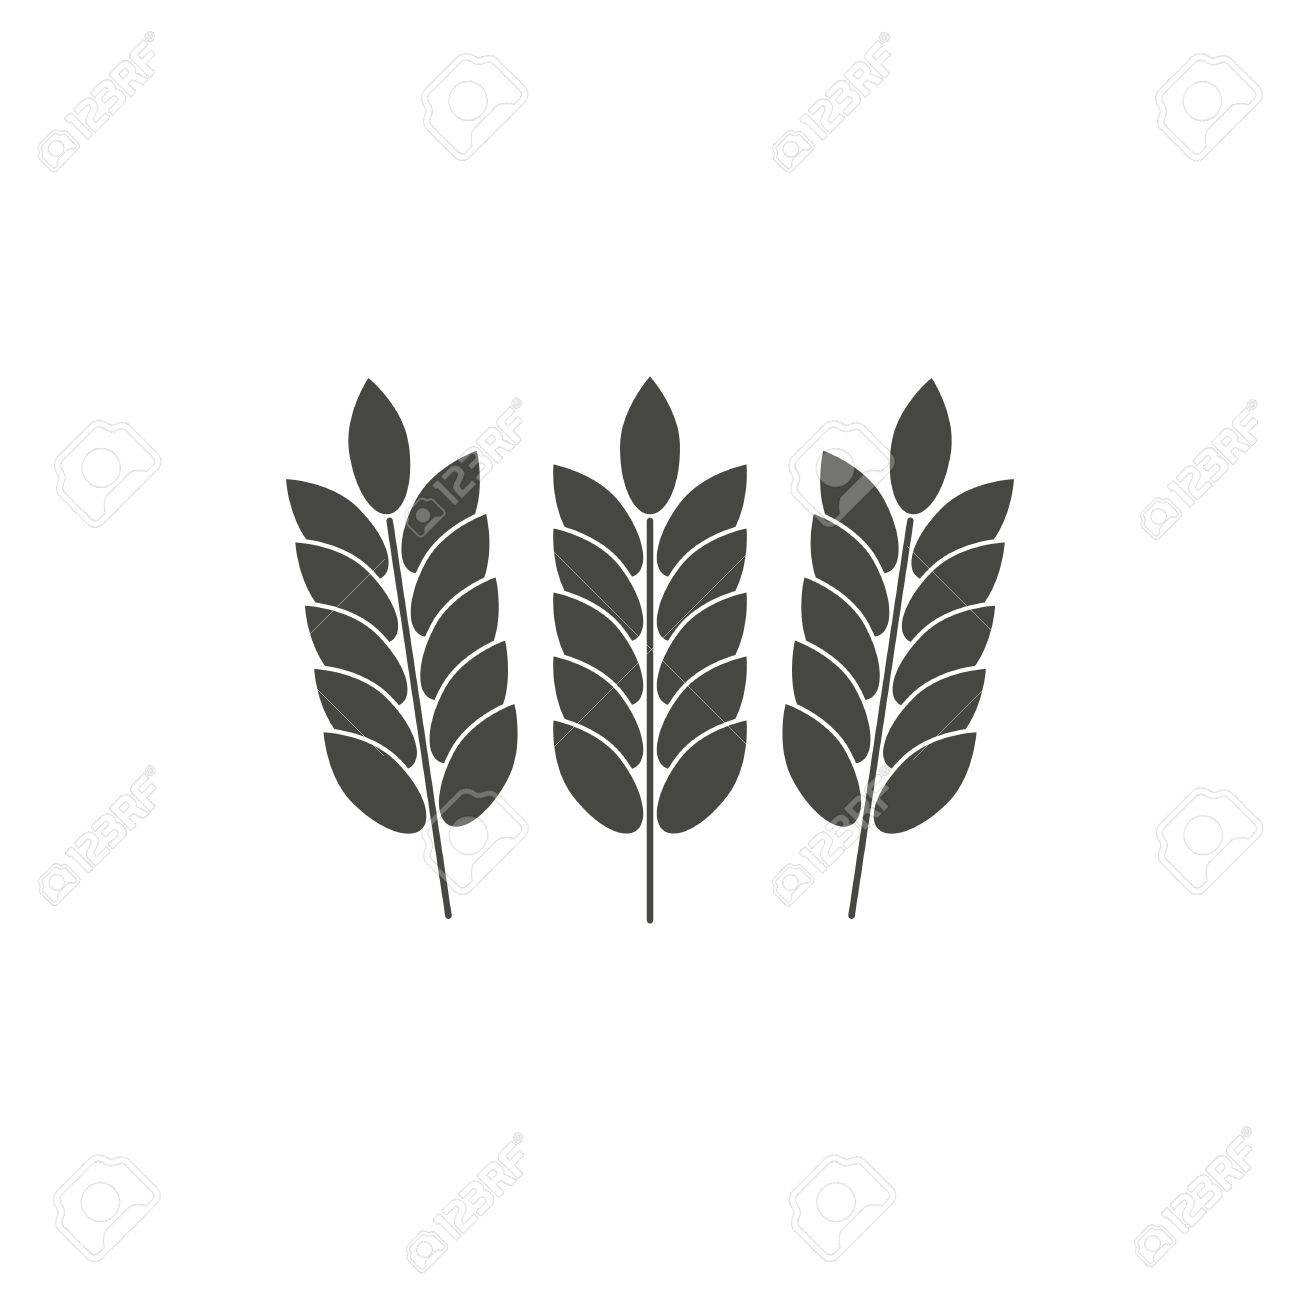 barley vector icon in black on a white background royalty free rh 123rf com barley vector free vector barley and hops